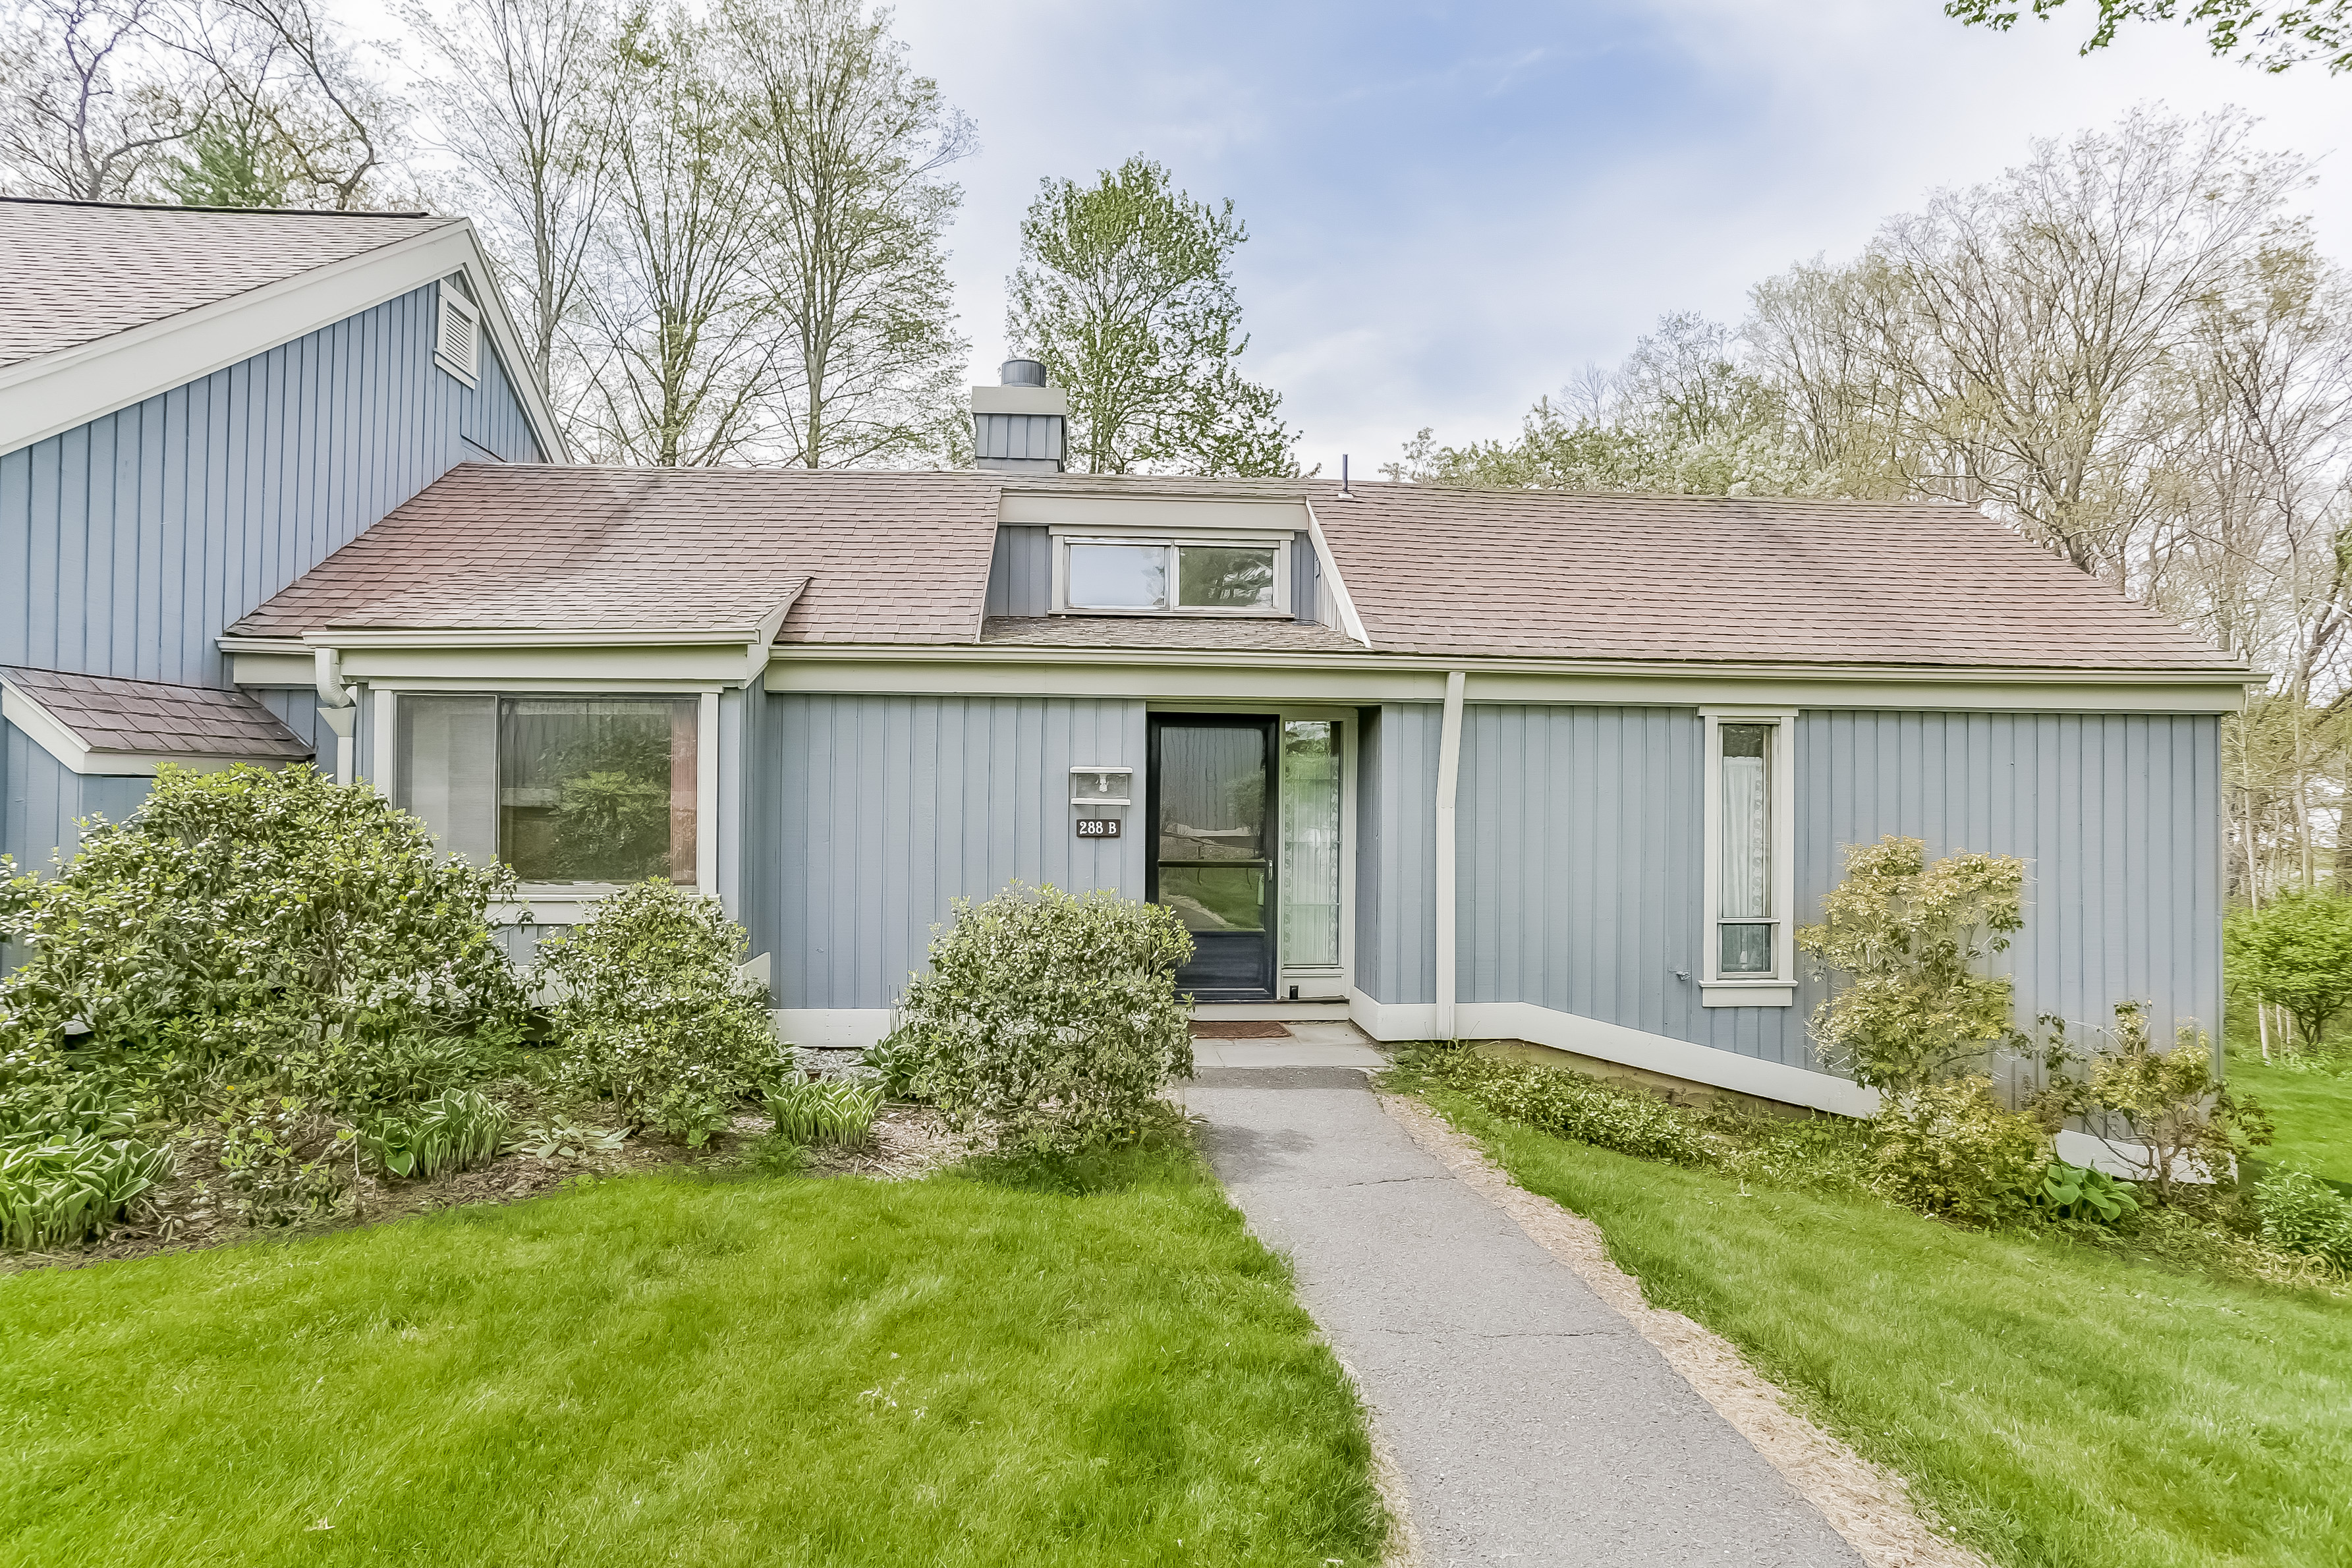 Single Family Home for Sale at Scenic Cul-De-Sac 288 Heritage Village B Southbury, Connecticut, 06488 United States